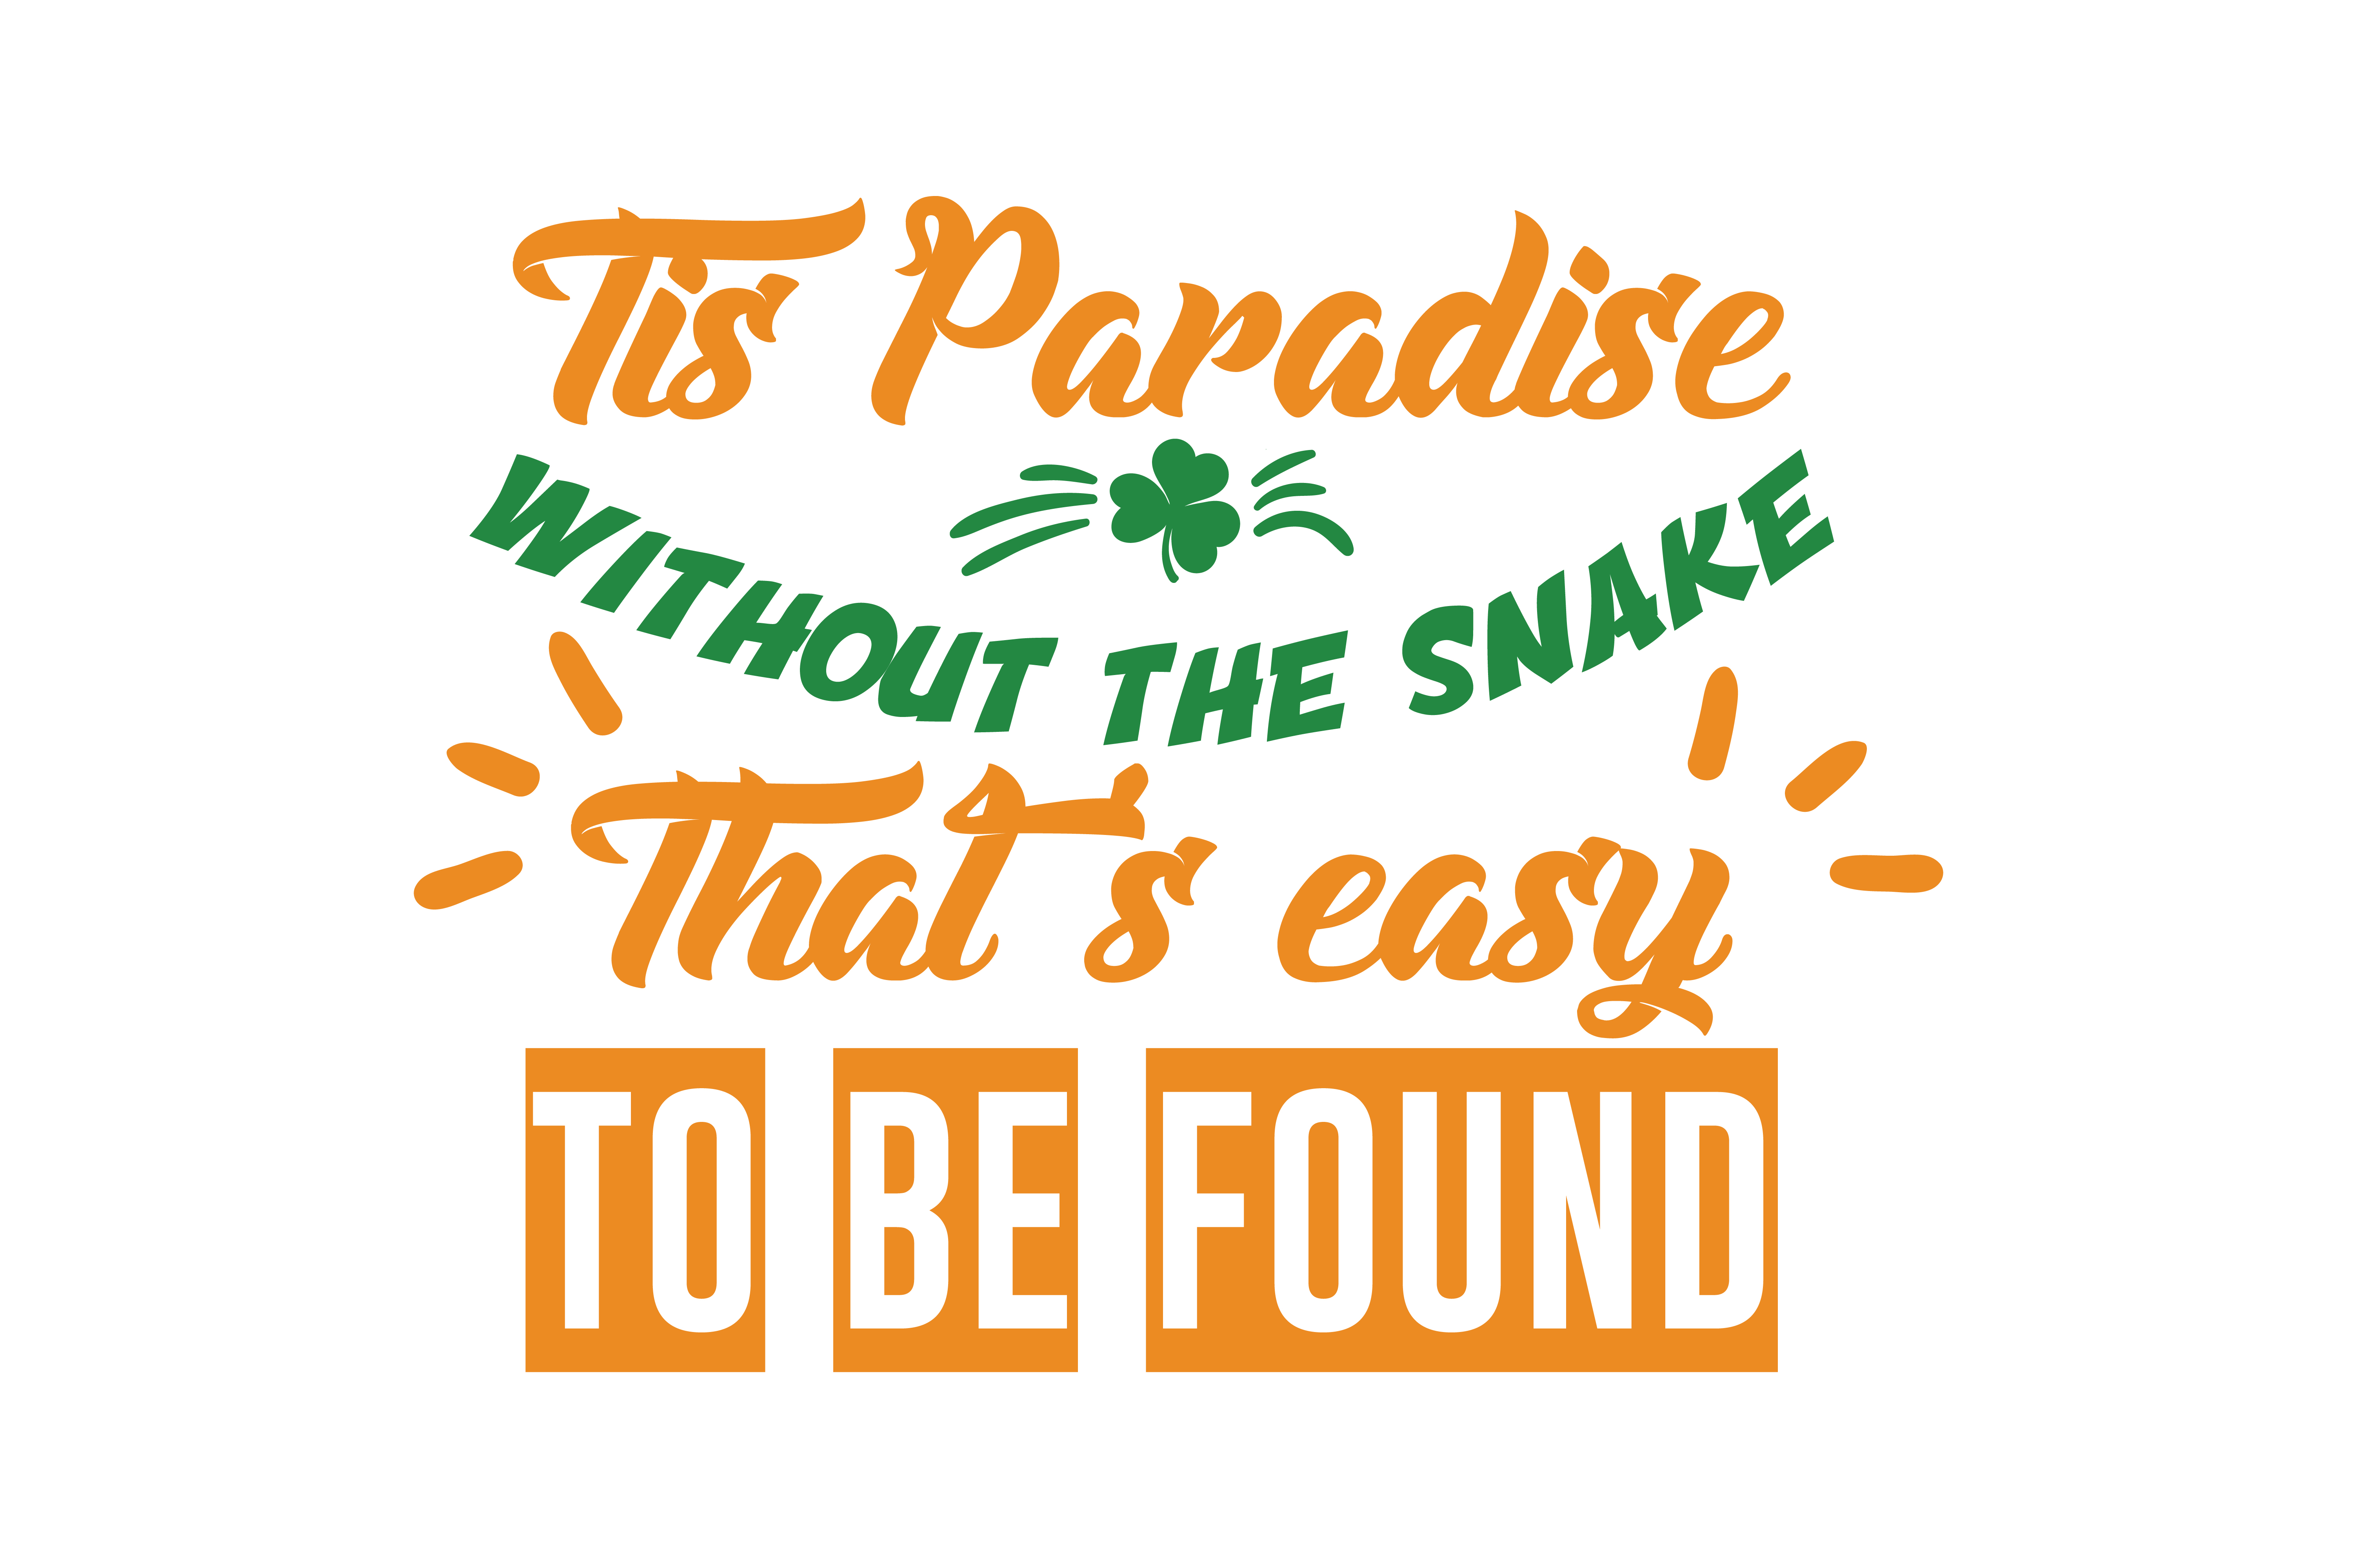 Download Free Tis Paradise Without The Snake That S Easy To Be Found Quote Svg for Cricut Explore, Silhouette and other cutting machines.